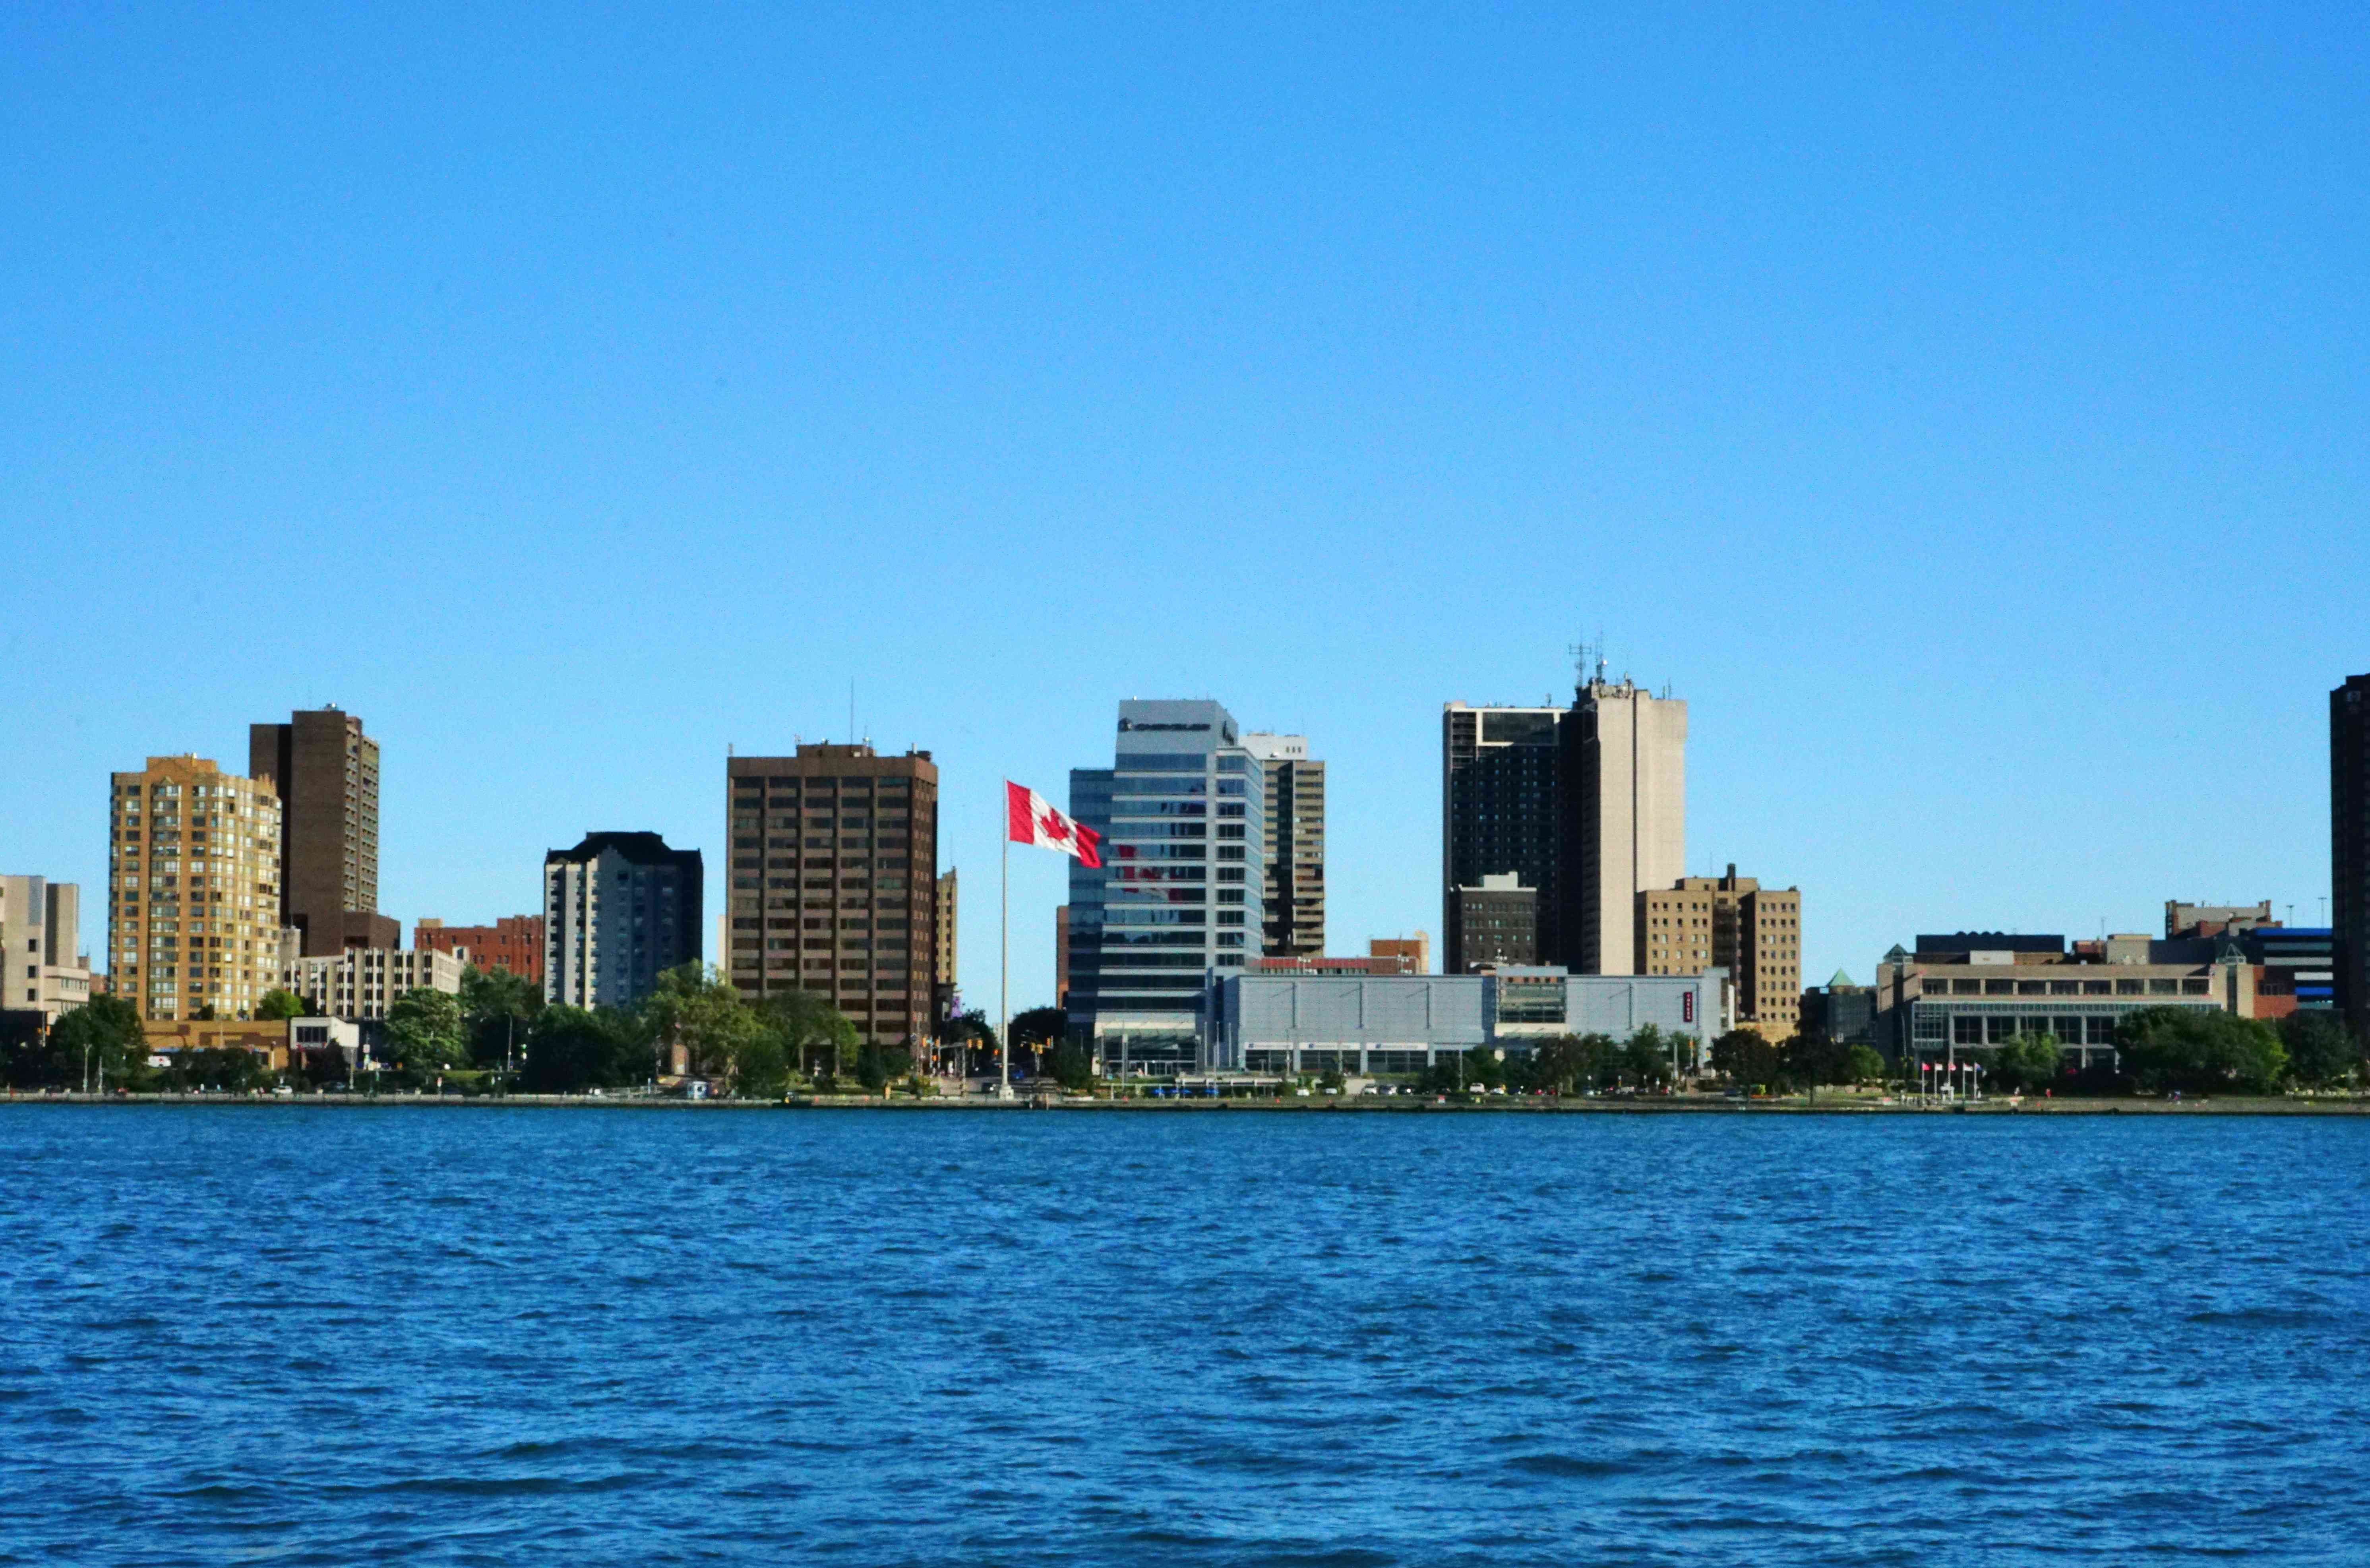 Downtown city skyline on the river